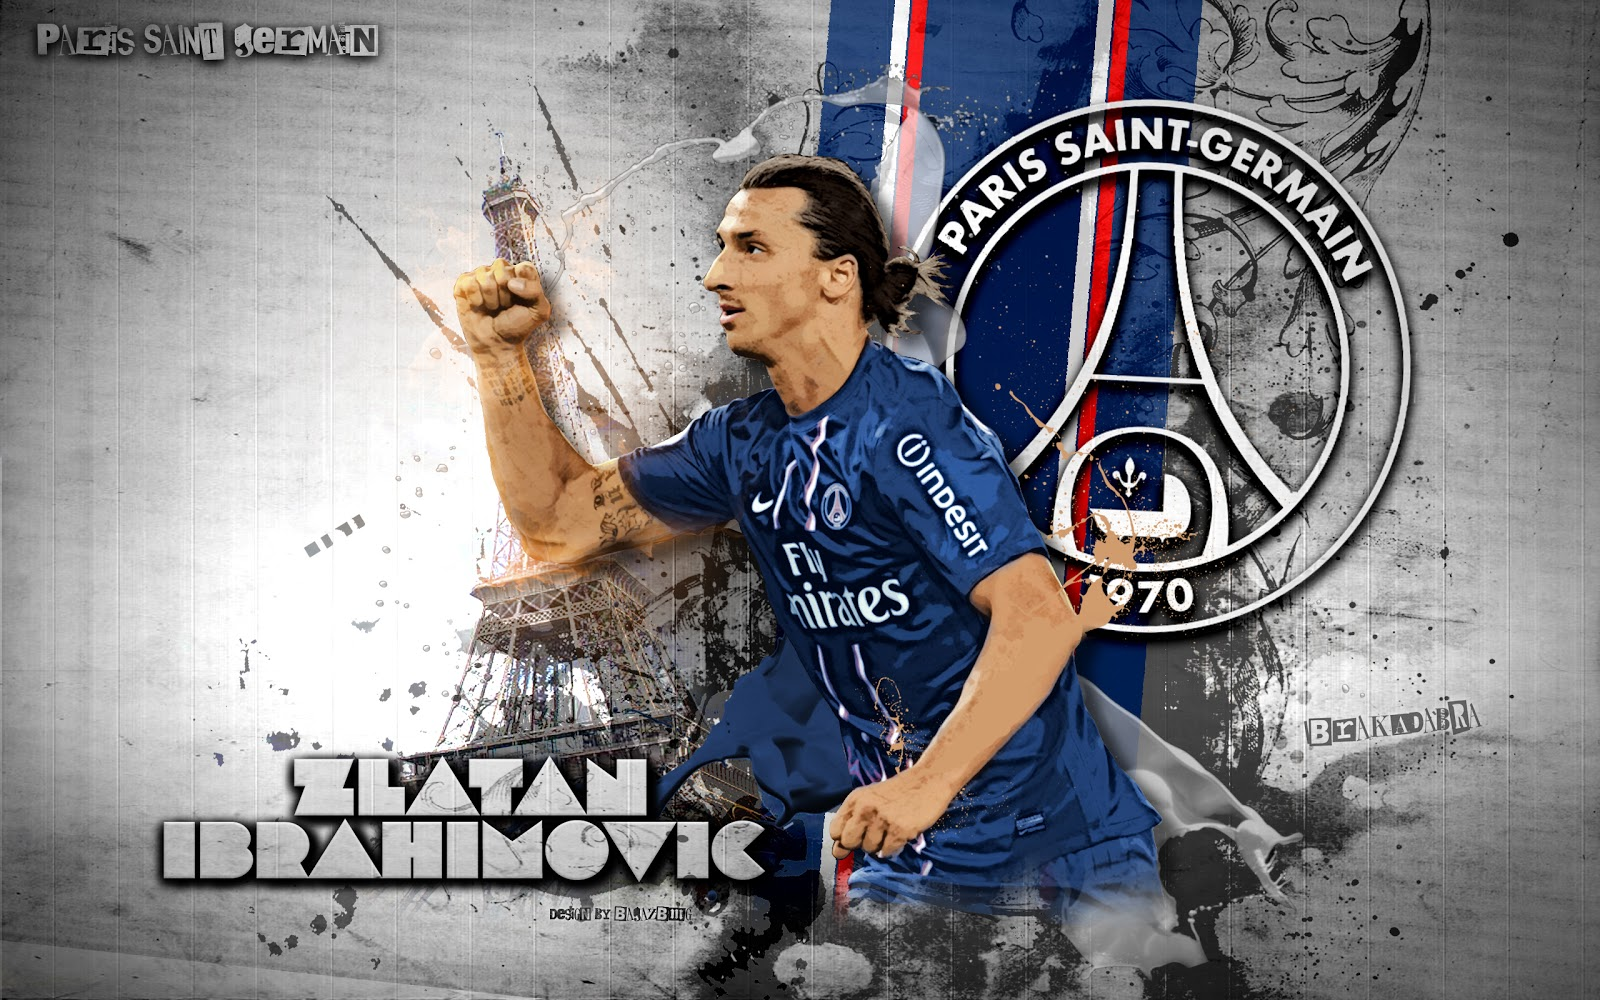 ibrahimovic iphone 5 wallpaper viewing gallery